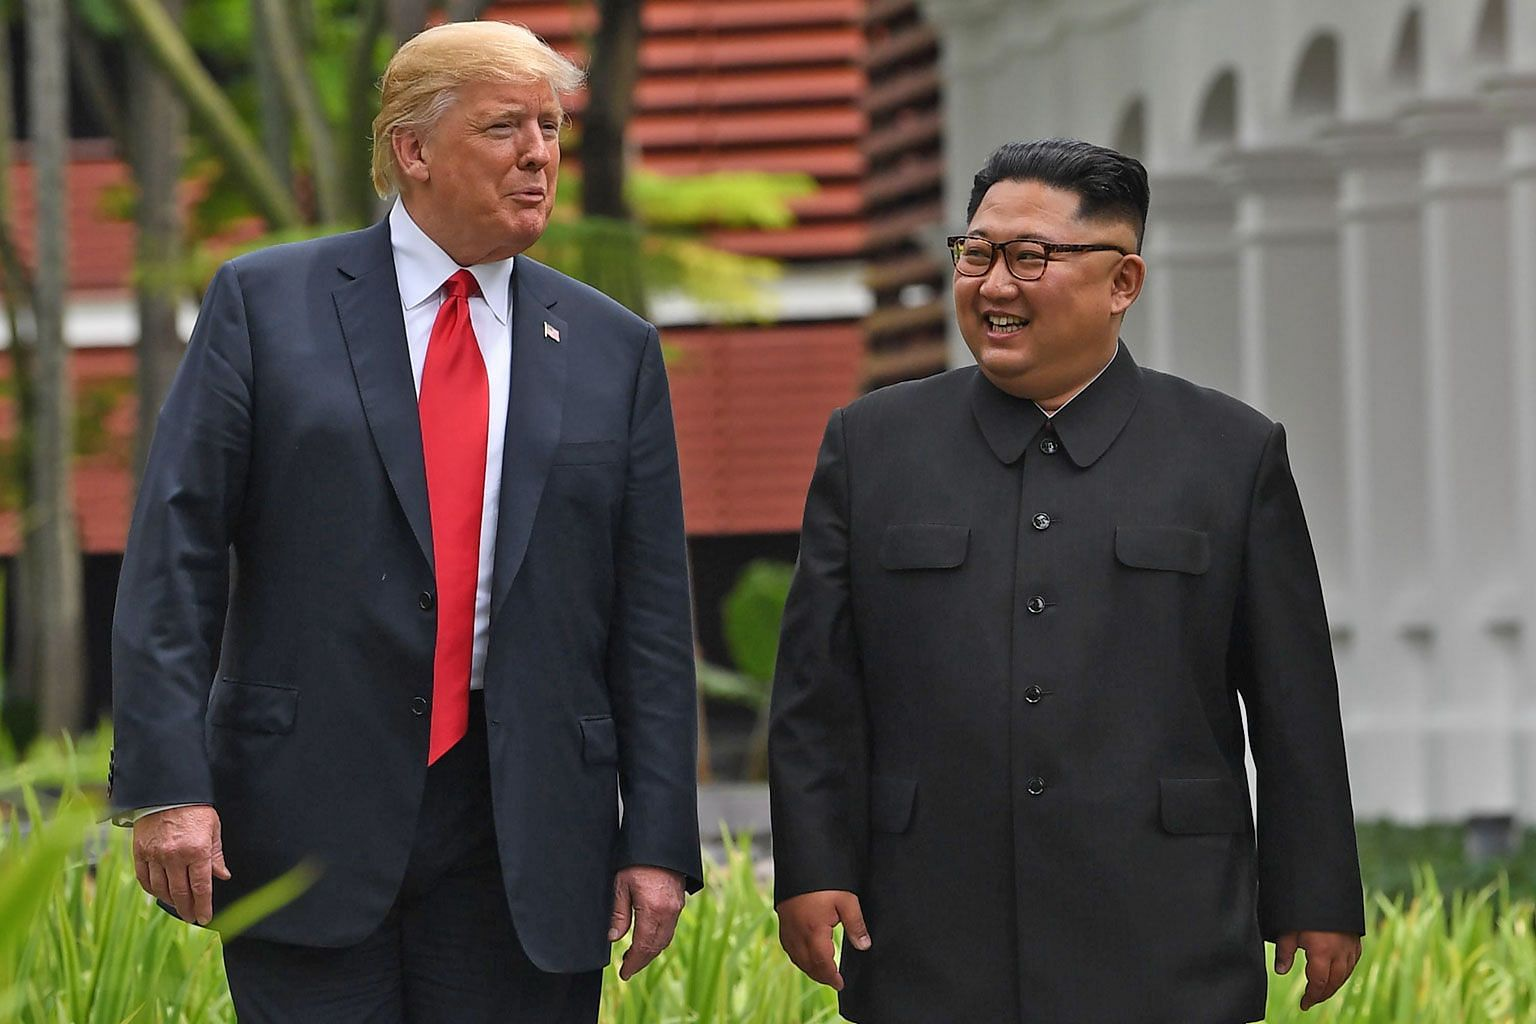 US President Donald Trump with North Korean leader Kim Jong Un during their summit at the Capella hotel in Singapore in June.